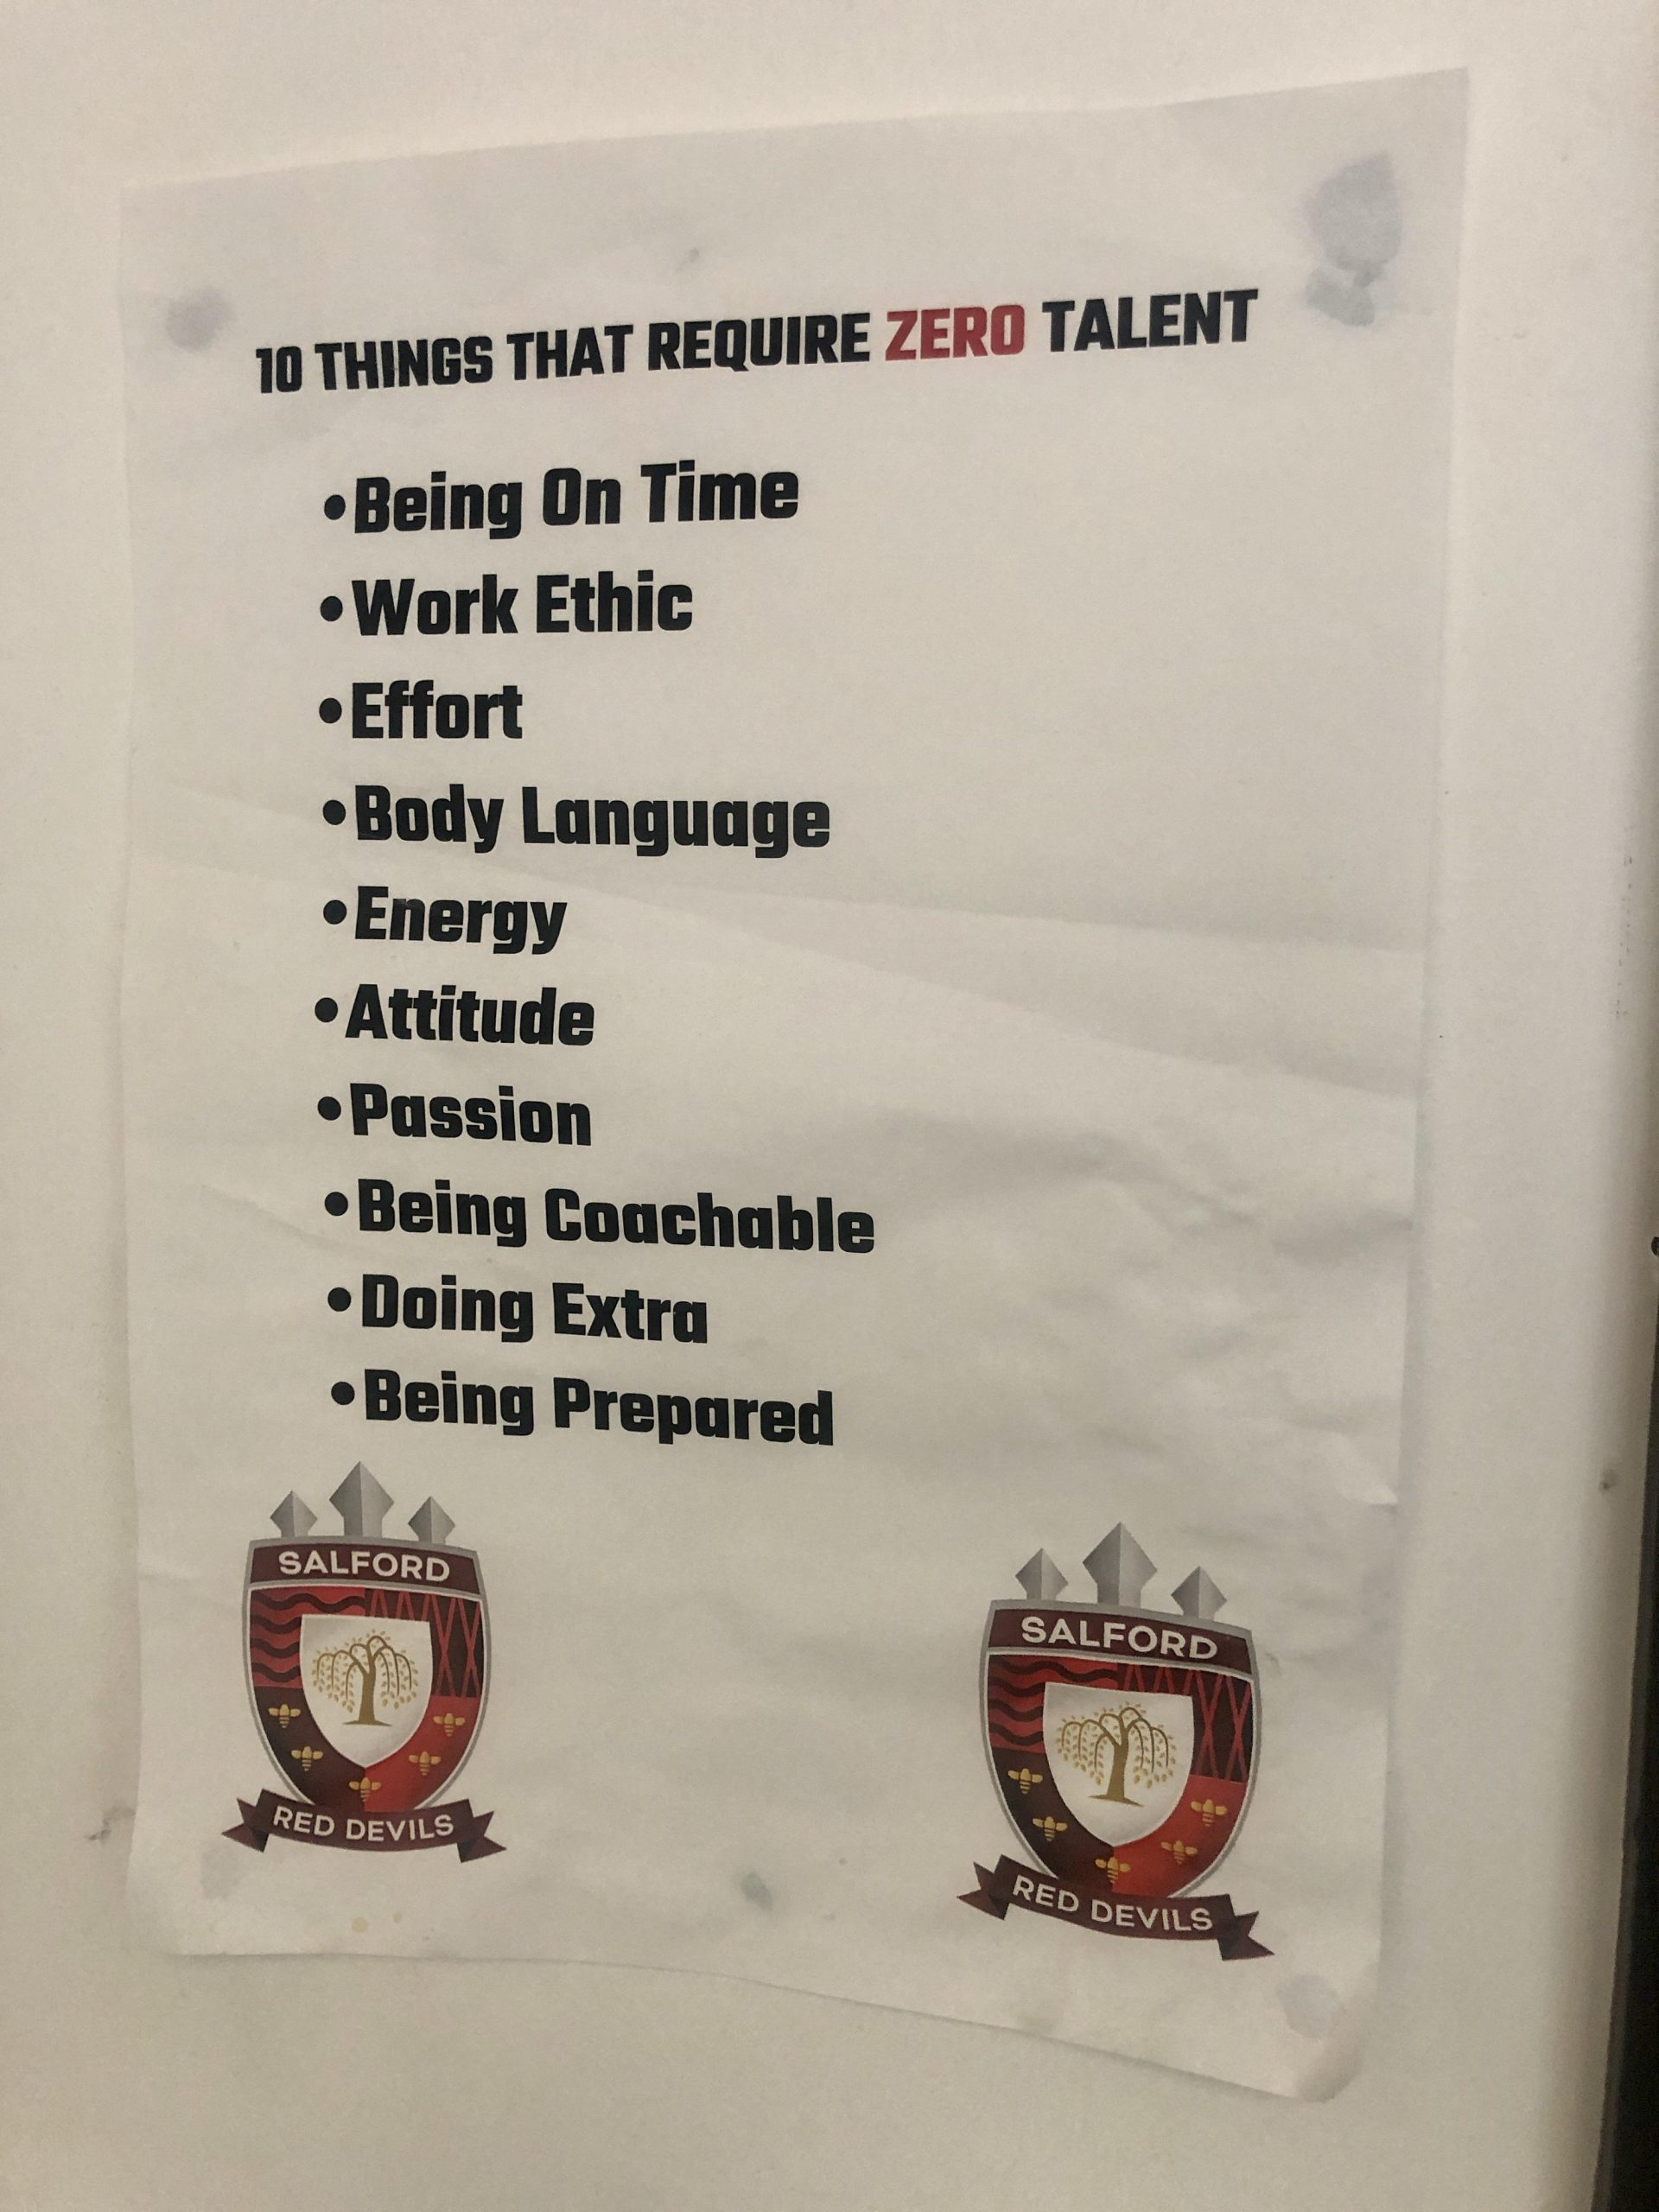 Salford Red Devils 10 things that require zero talent